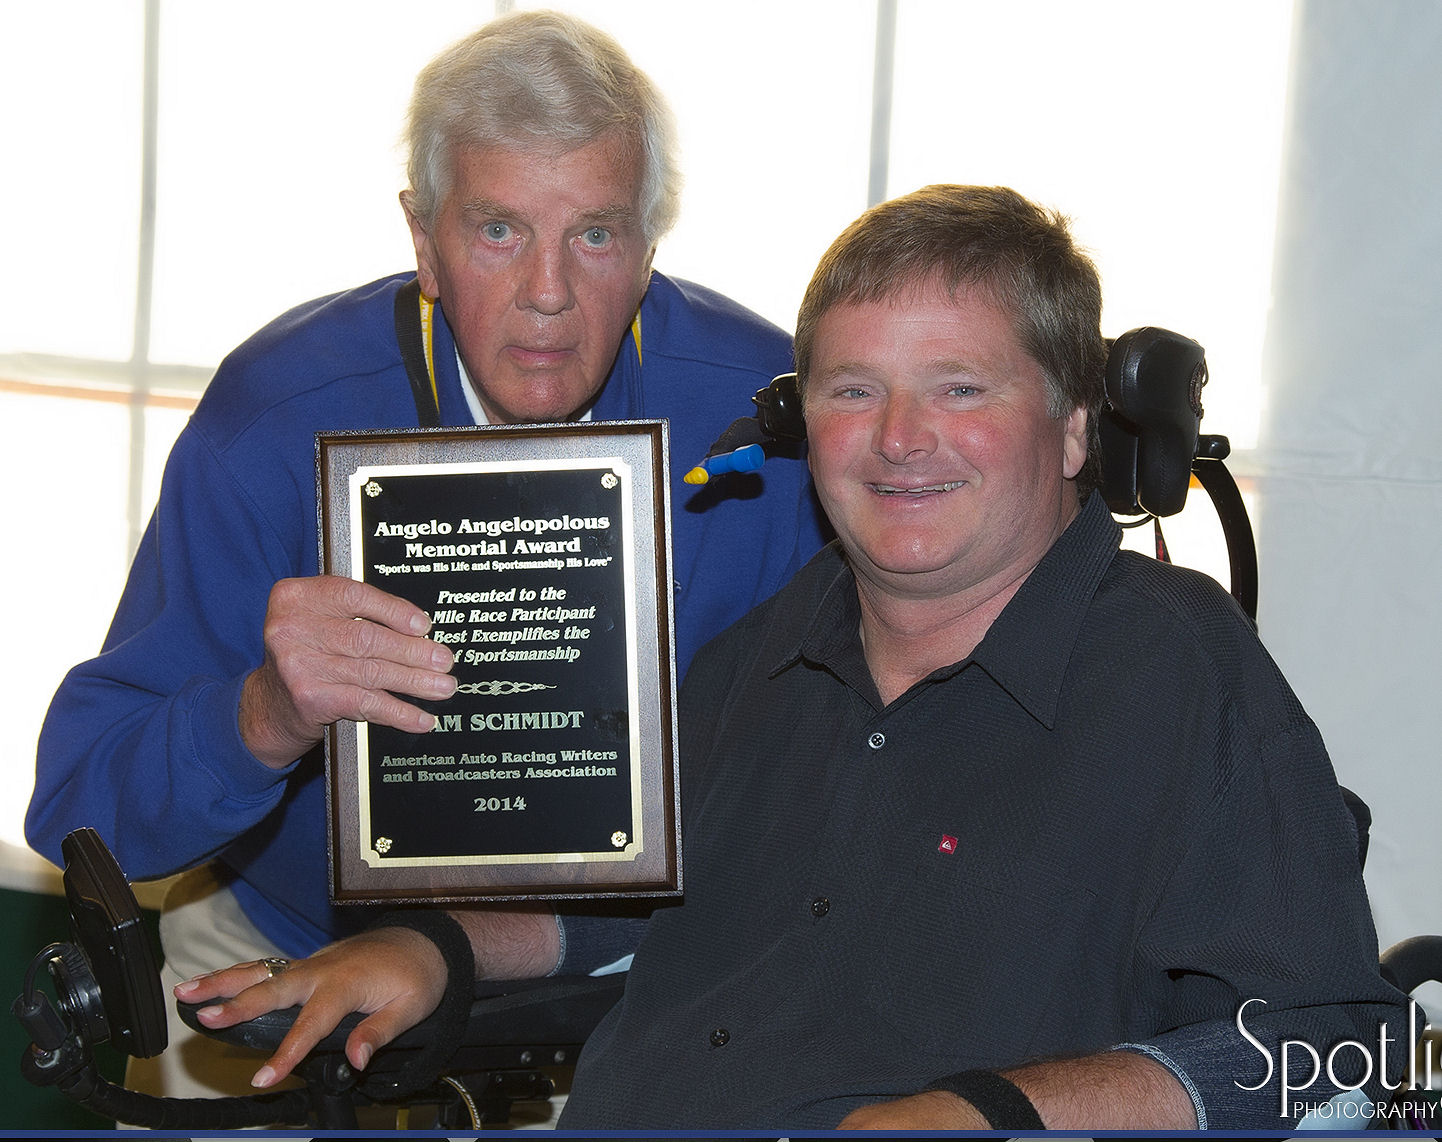 Dick Mittman presents Angelopolous Award to Sam Schmidt